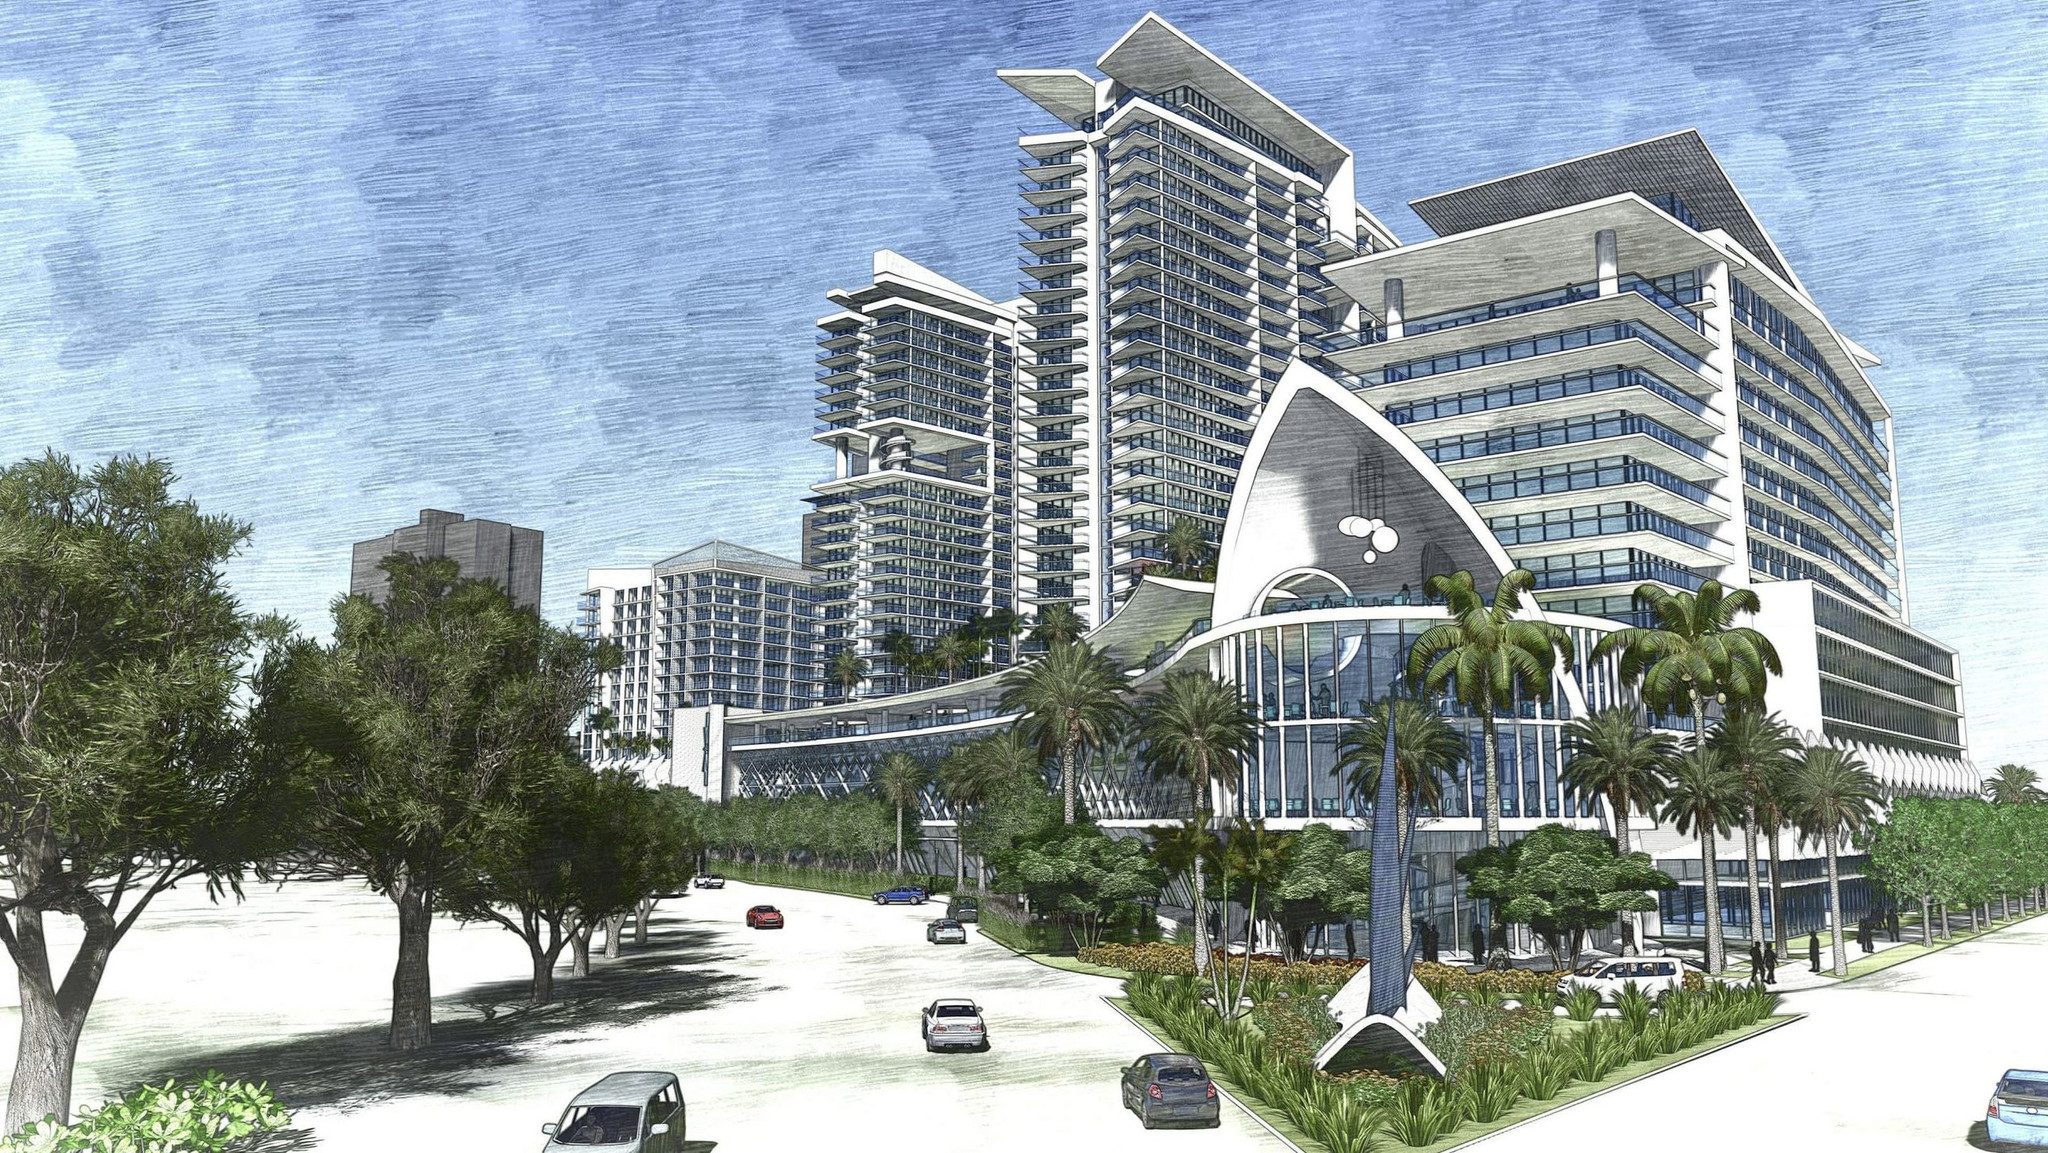 30-story towers planned for Searstown in Fort Lauderdale - South ...